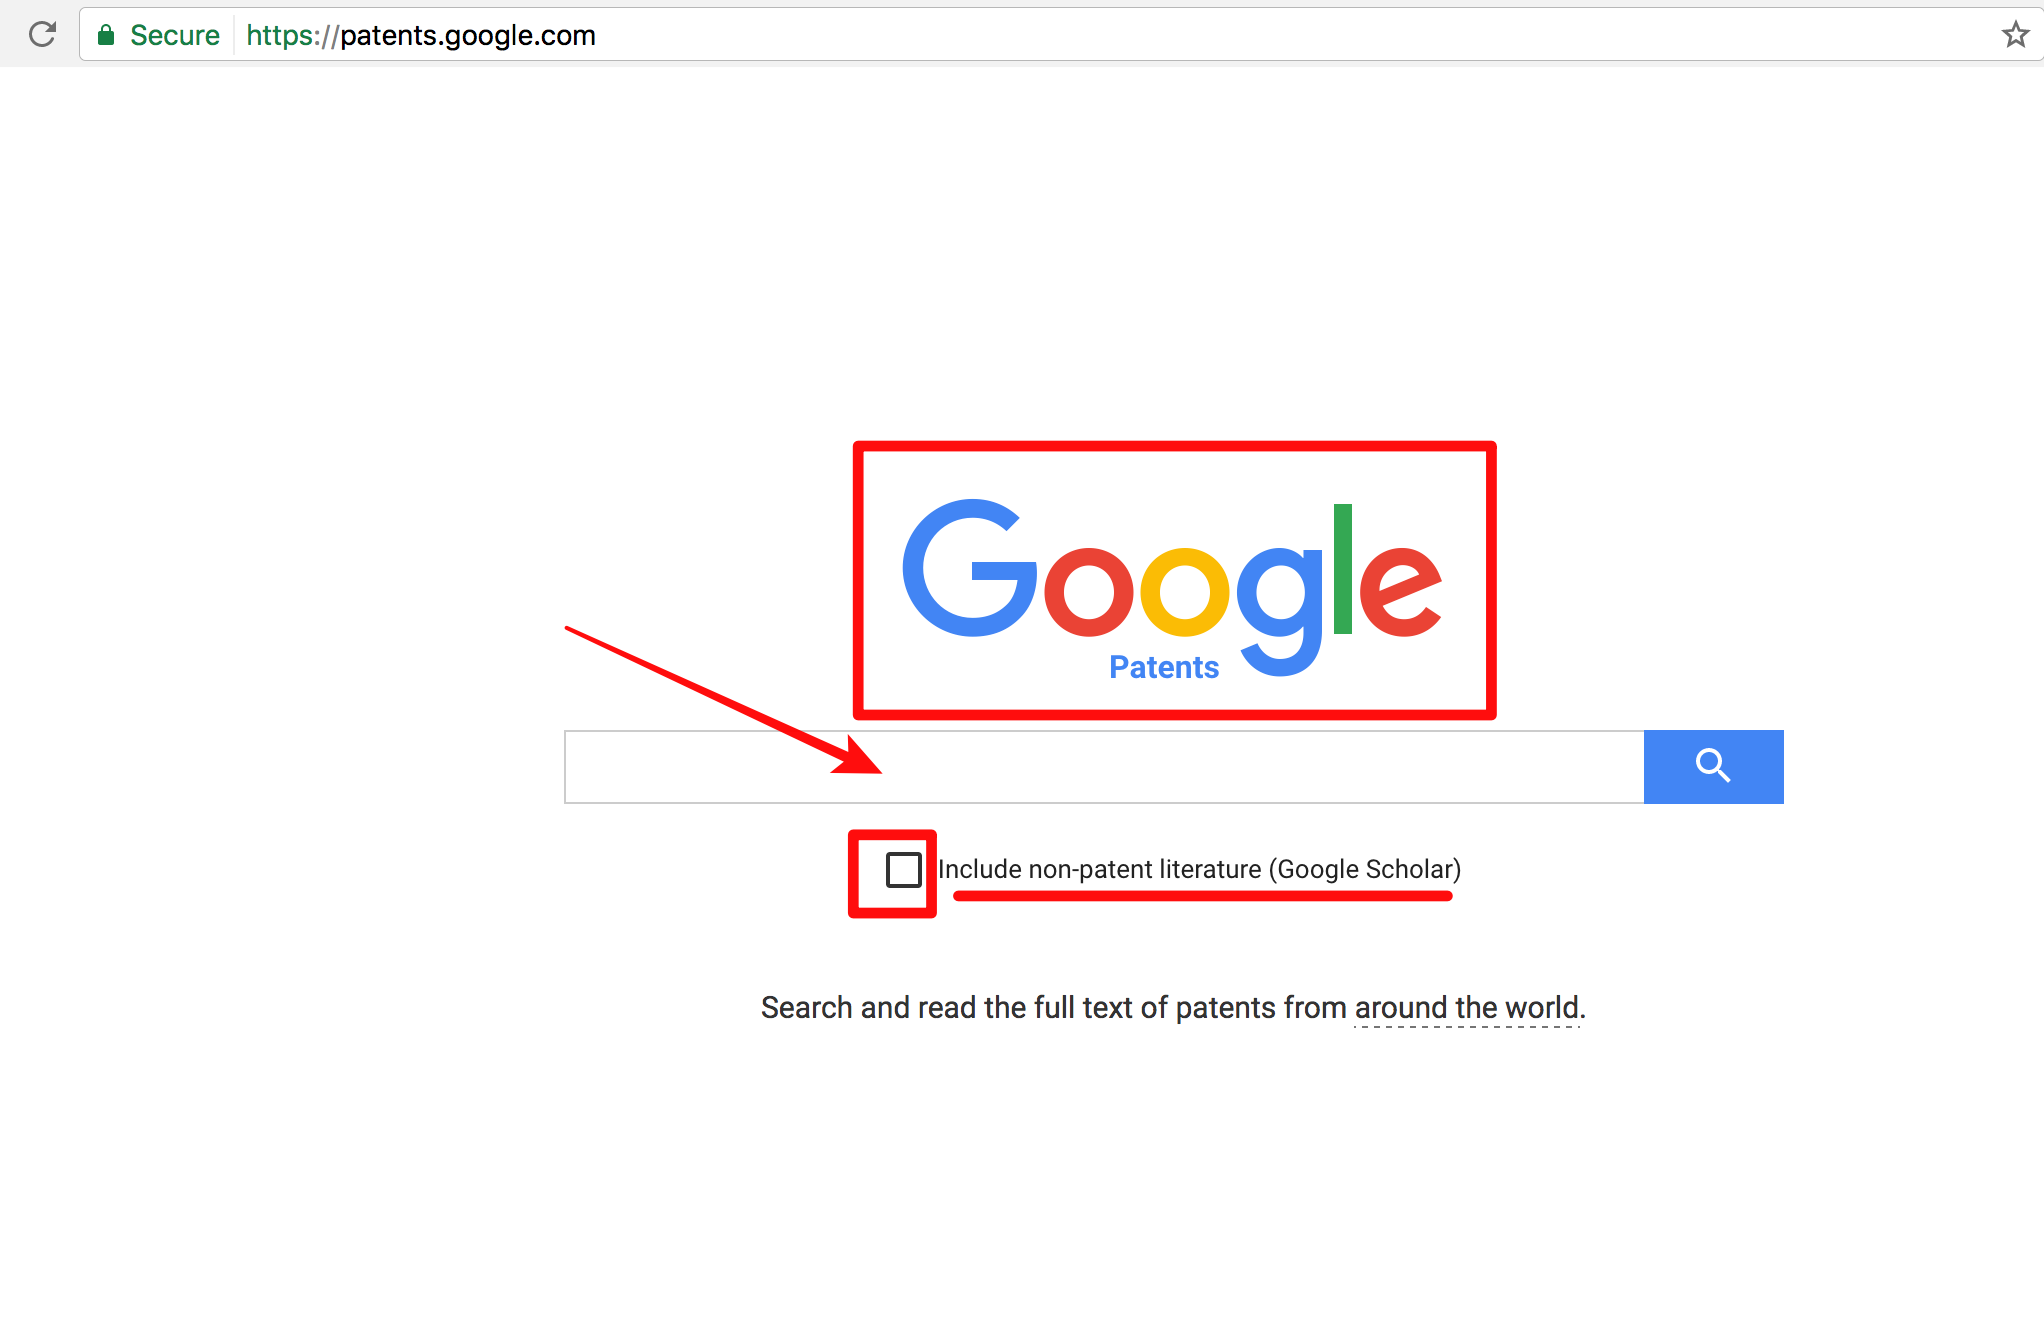 google-patents-search